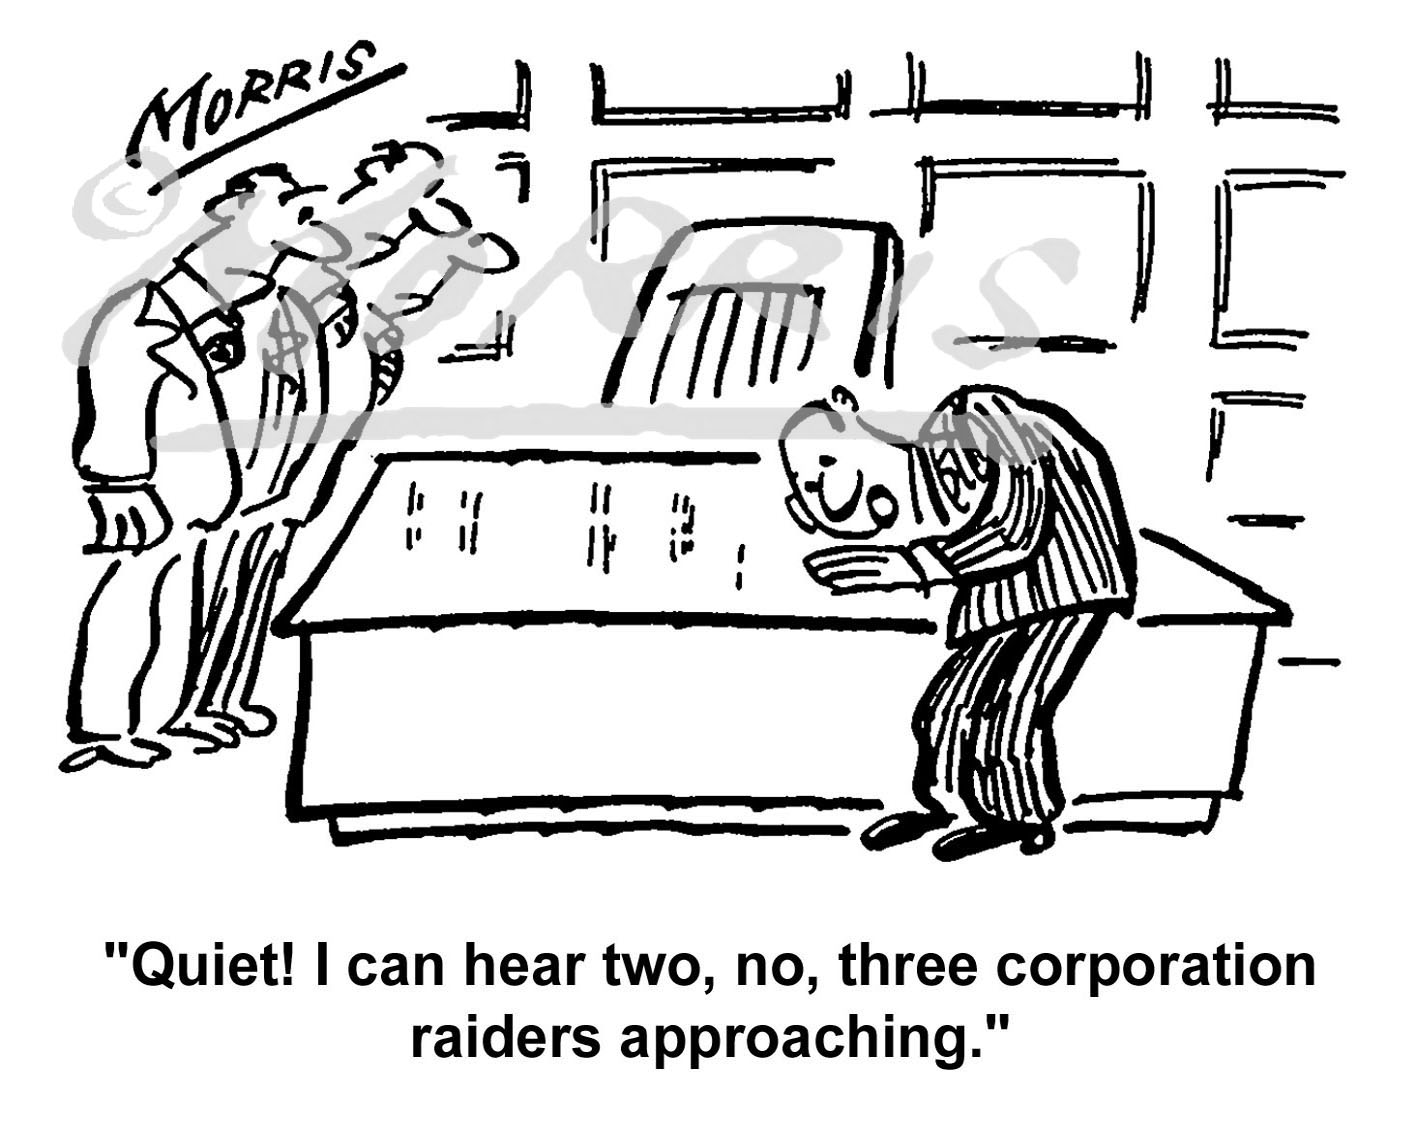 Boardroom corporation raiders cartoon Ref: 0733bw